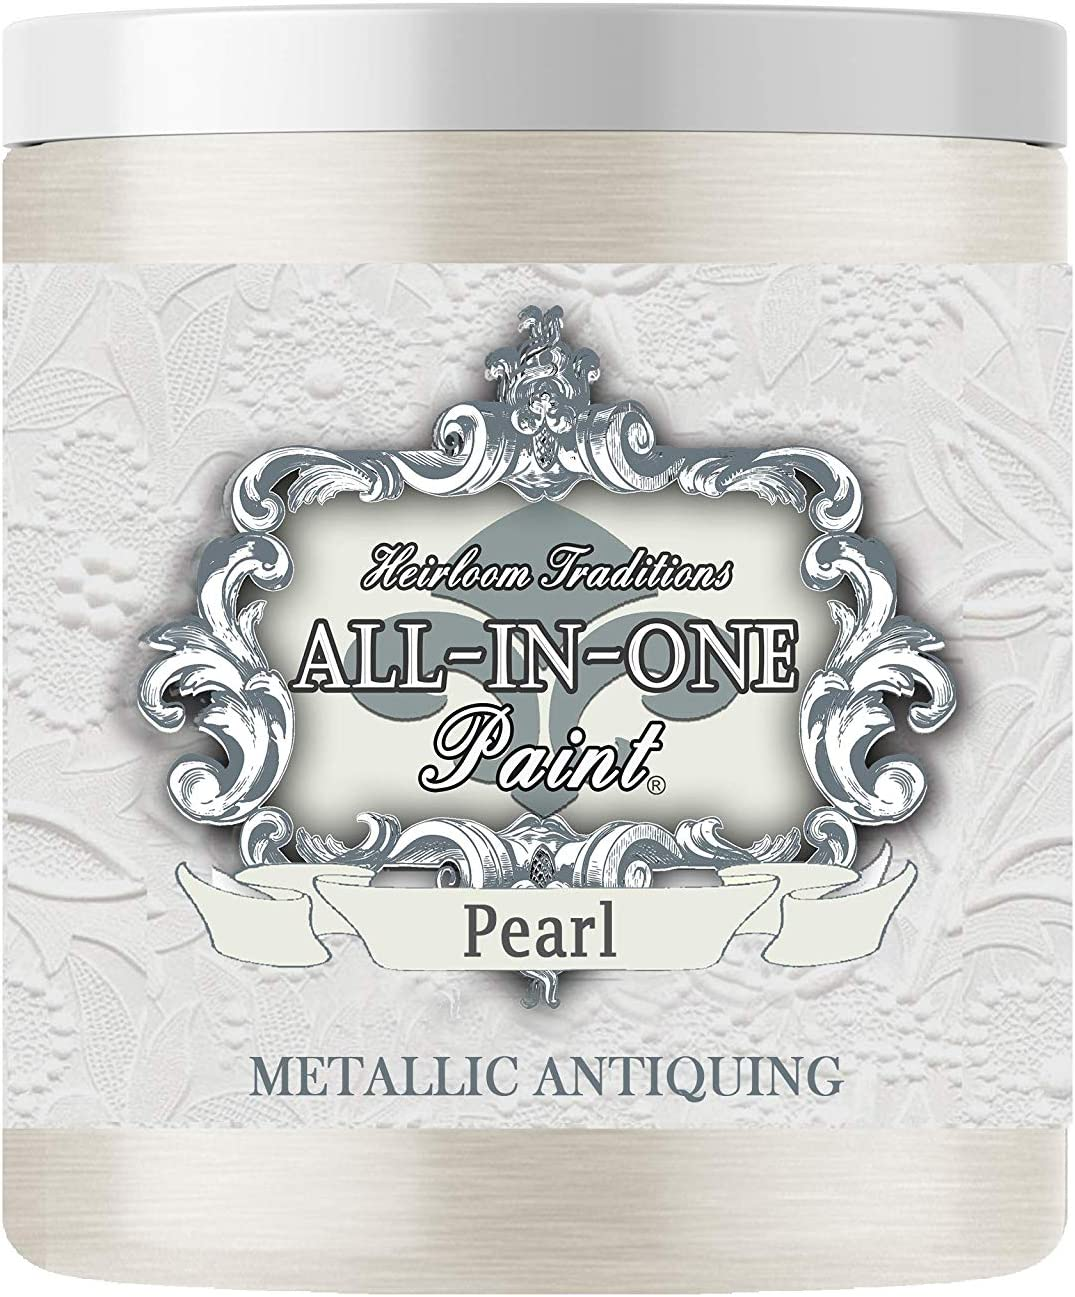 Pearl Metallic Antiquing Gel, Heirloom Traditions All-in-ONE Paint, 8oz